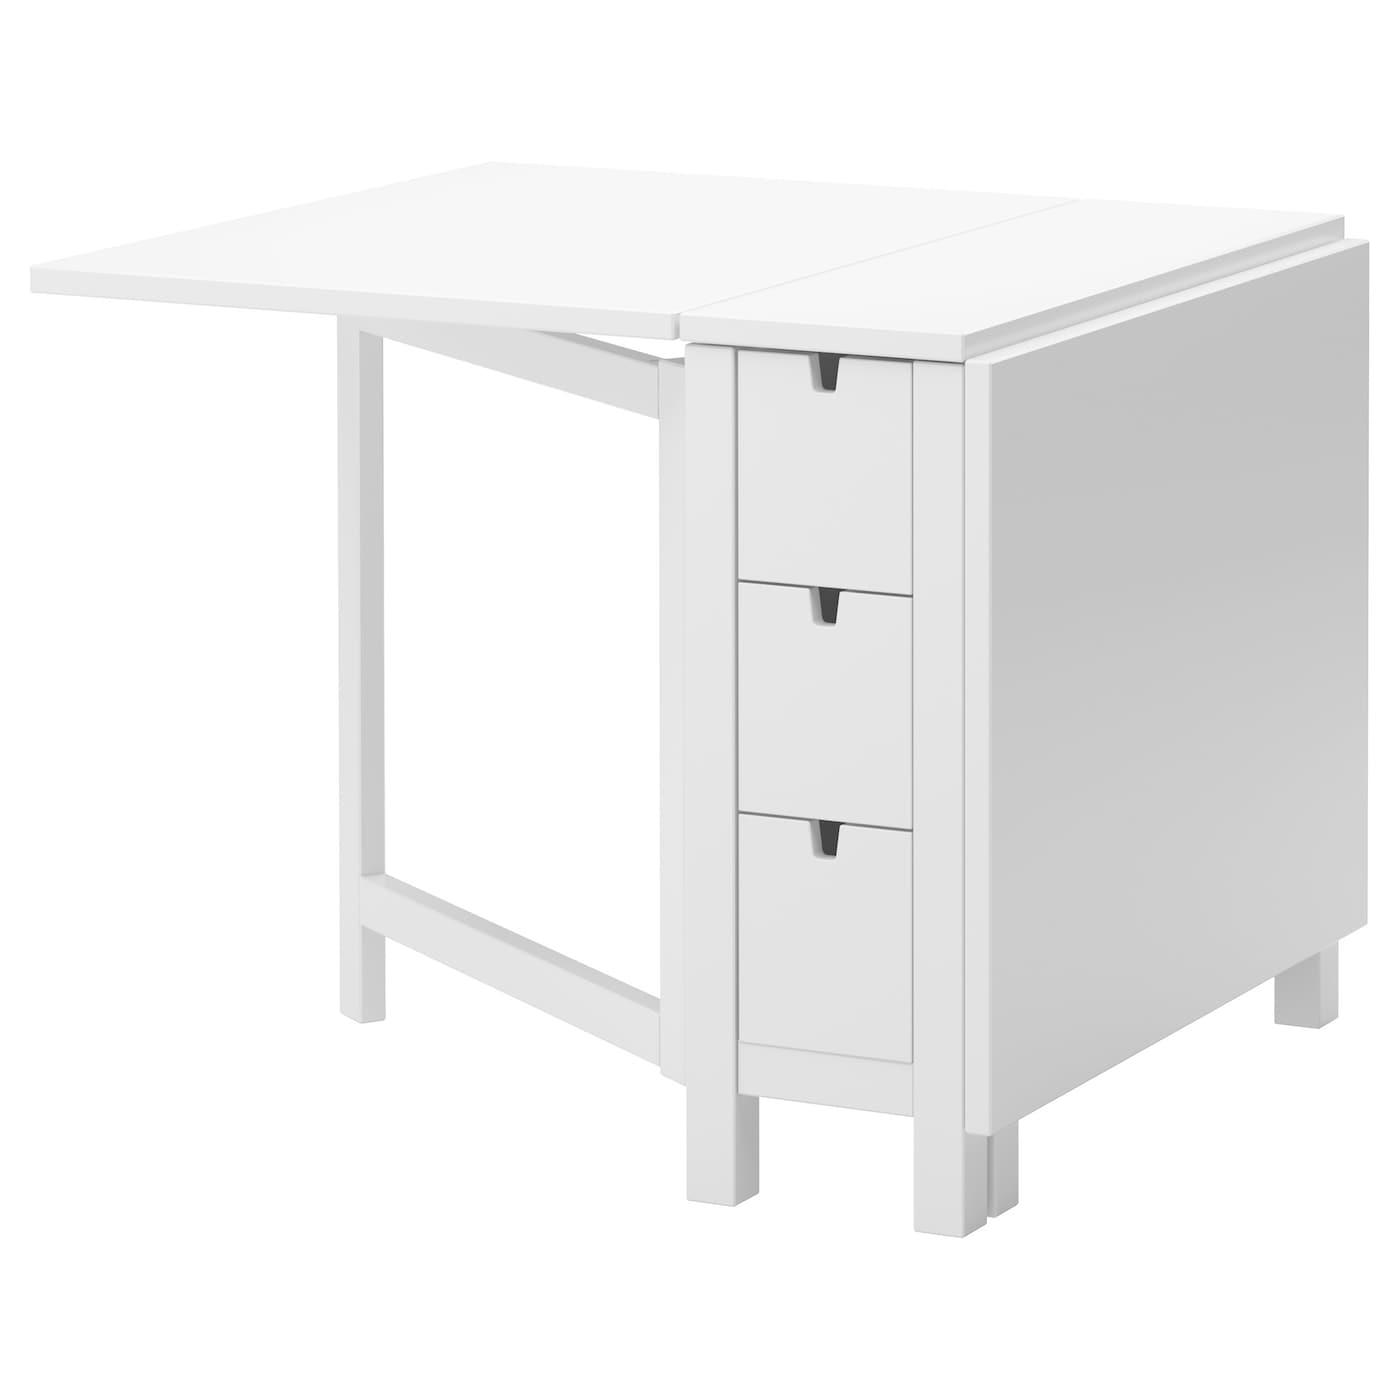 norden gateleg table white 26 89 152 x 80 cm ikea. Black Bedroom Furniture Sets. Home Design Ideas